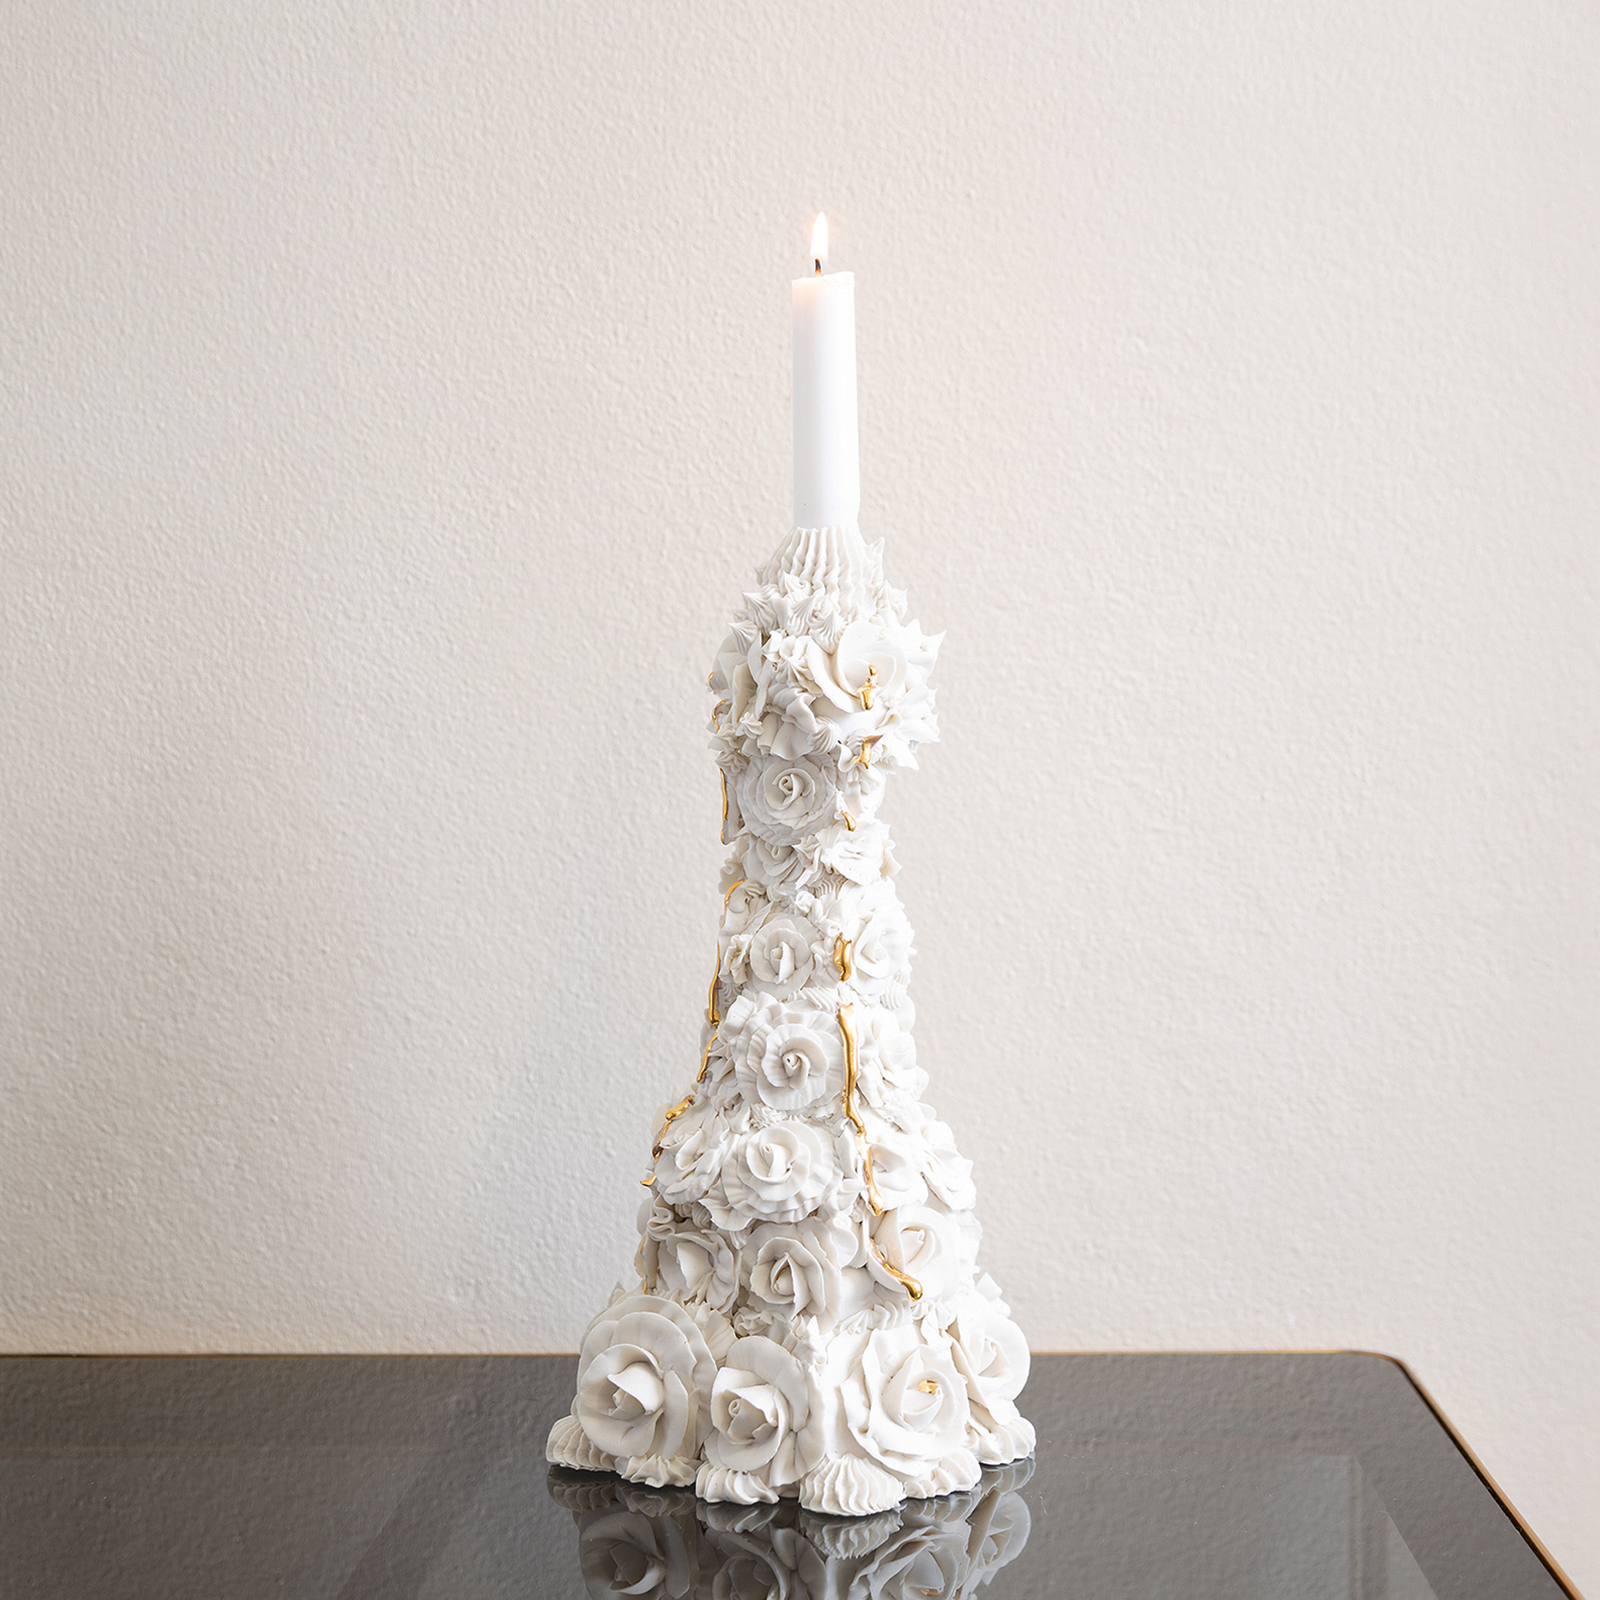 Crying Rose Candelabra In White With Kitsch Tears In Hand Piped Porcelain By Ebony Russell2